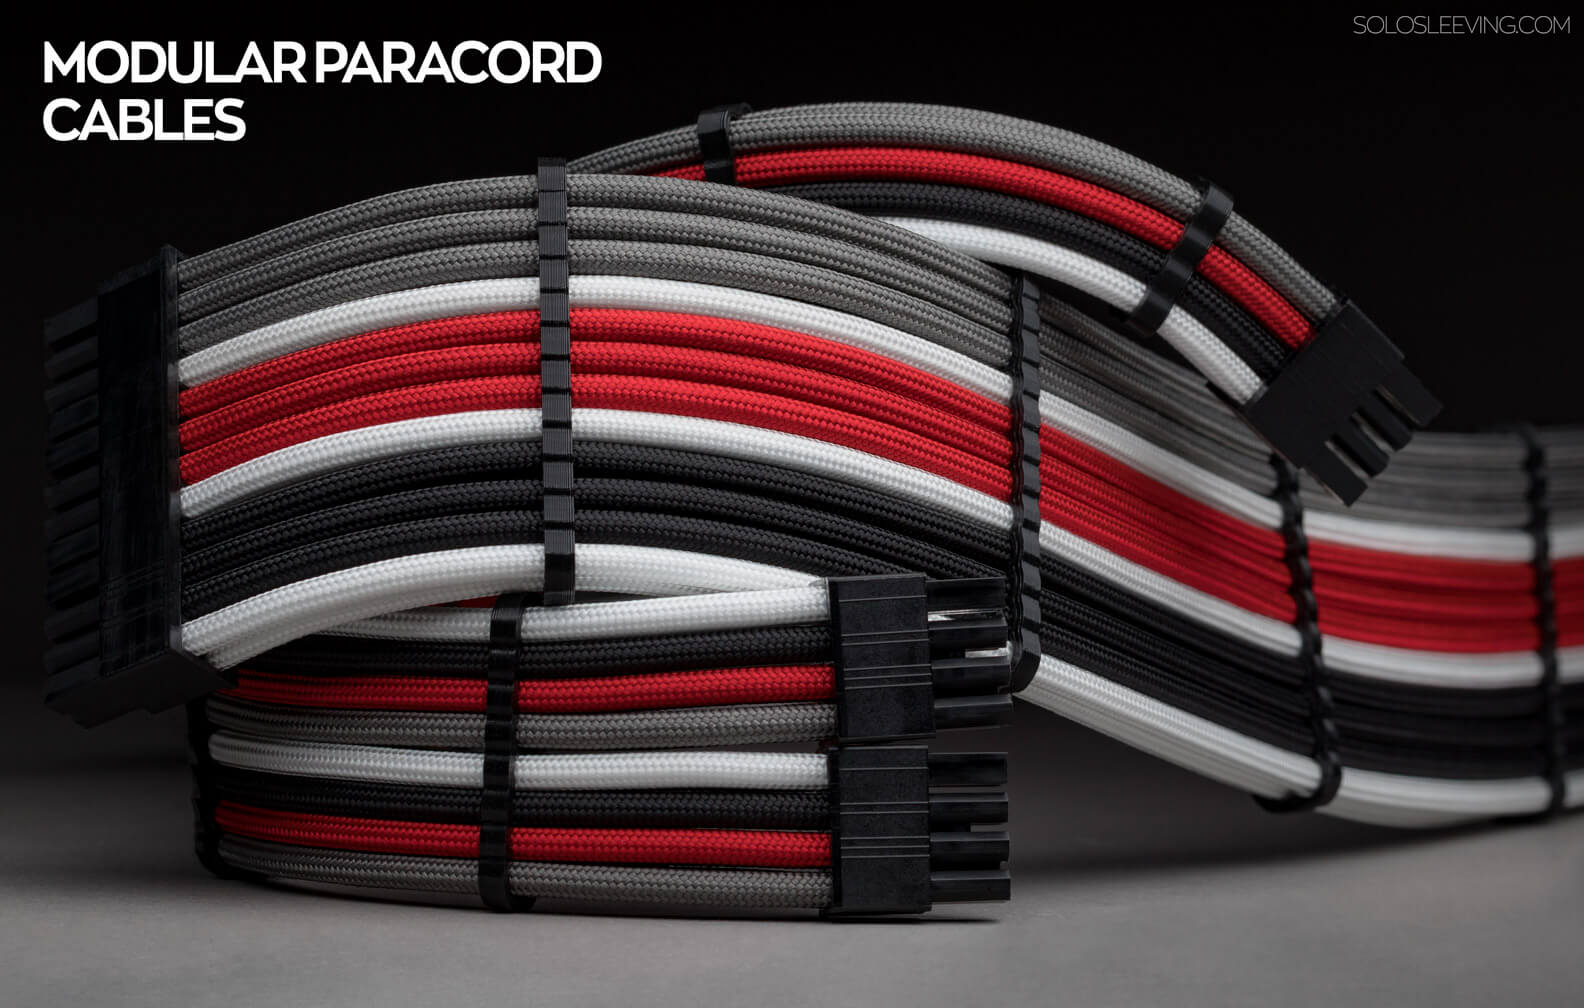 Shop premium paracord PSU cables. Handcrafted in the USA, and fully customizable to any color pattern.